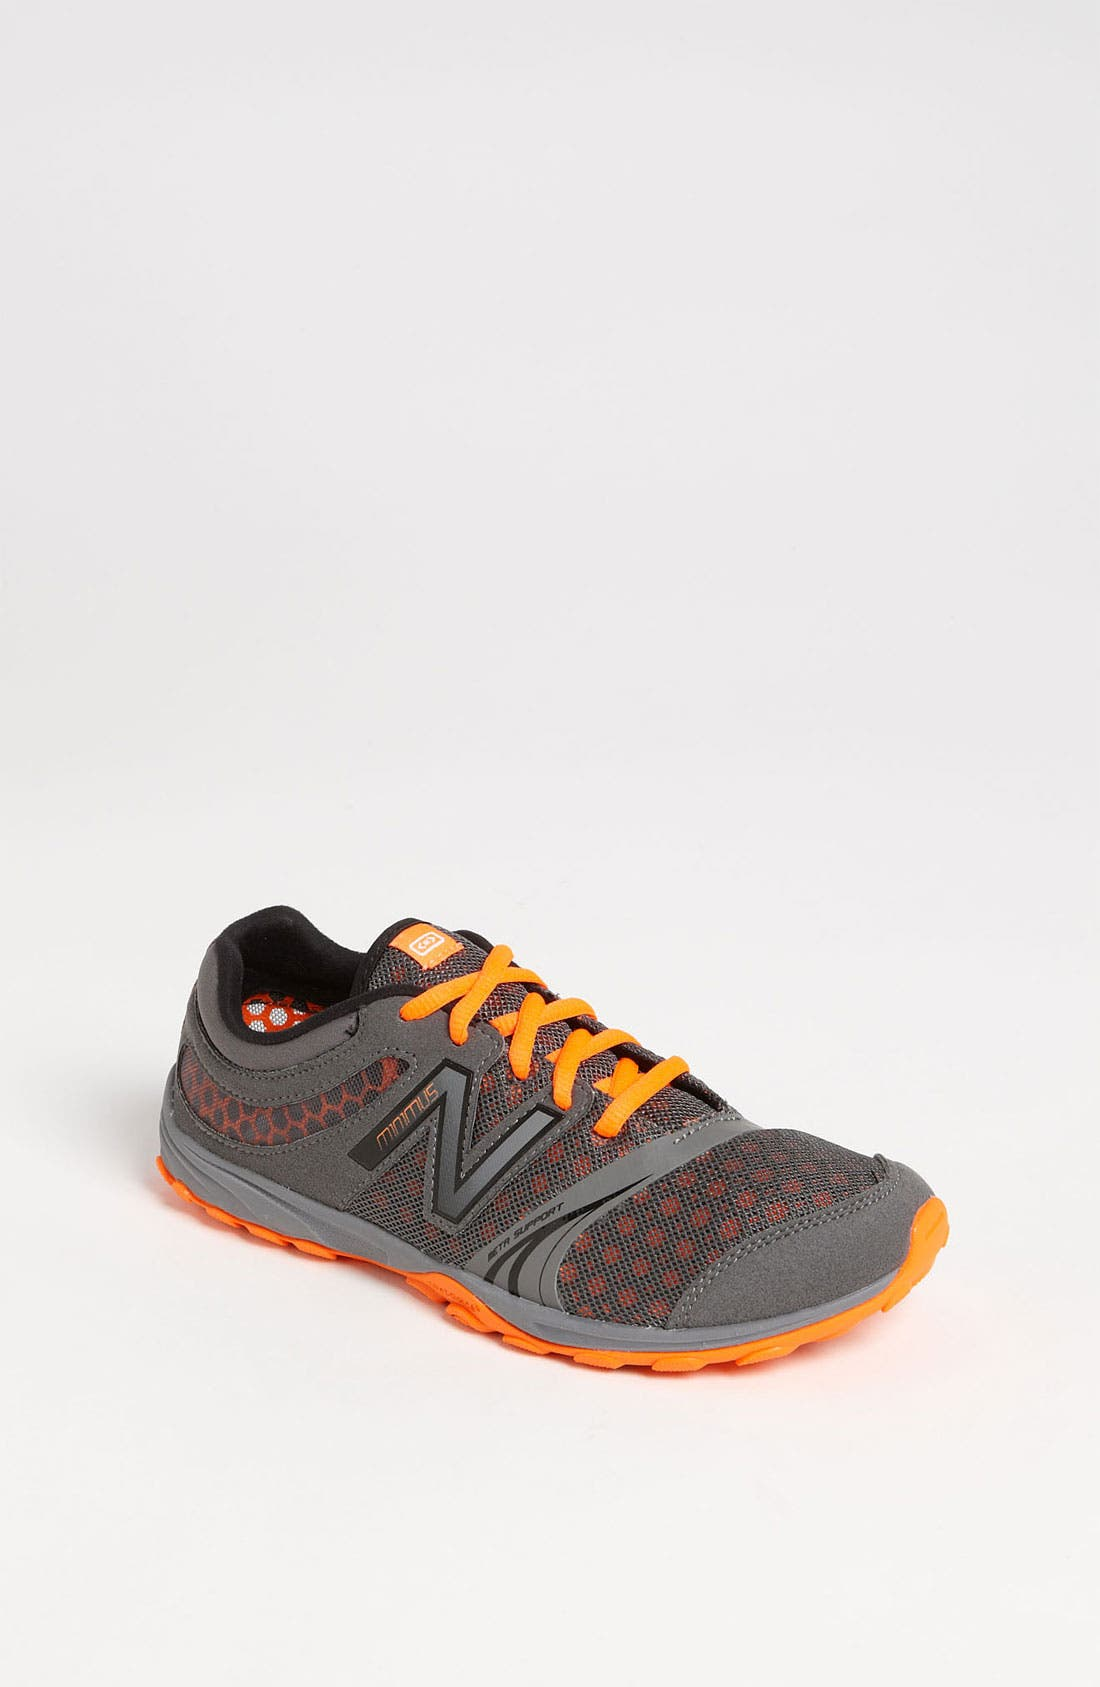 Alternate Image 1 Selected - New Balance 'Takedown 20V3' Running Shoe (Toddler, Little Kid & Big Kid)